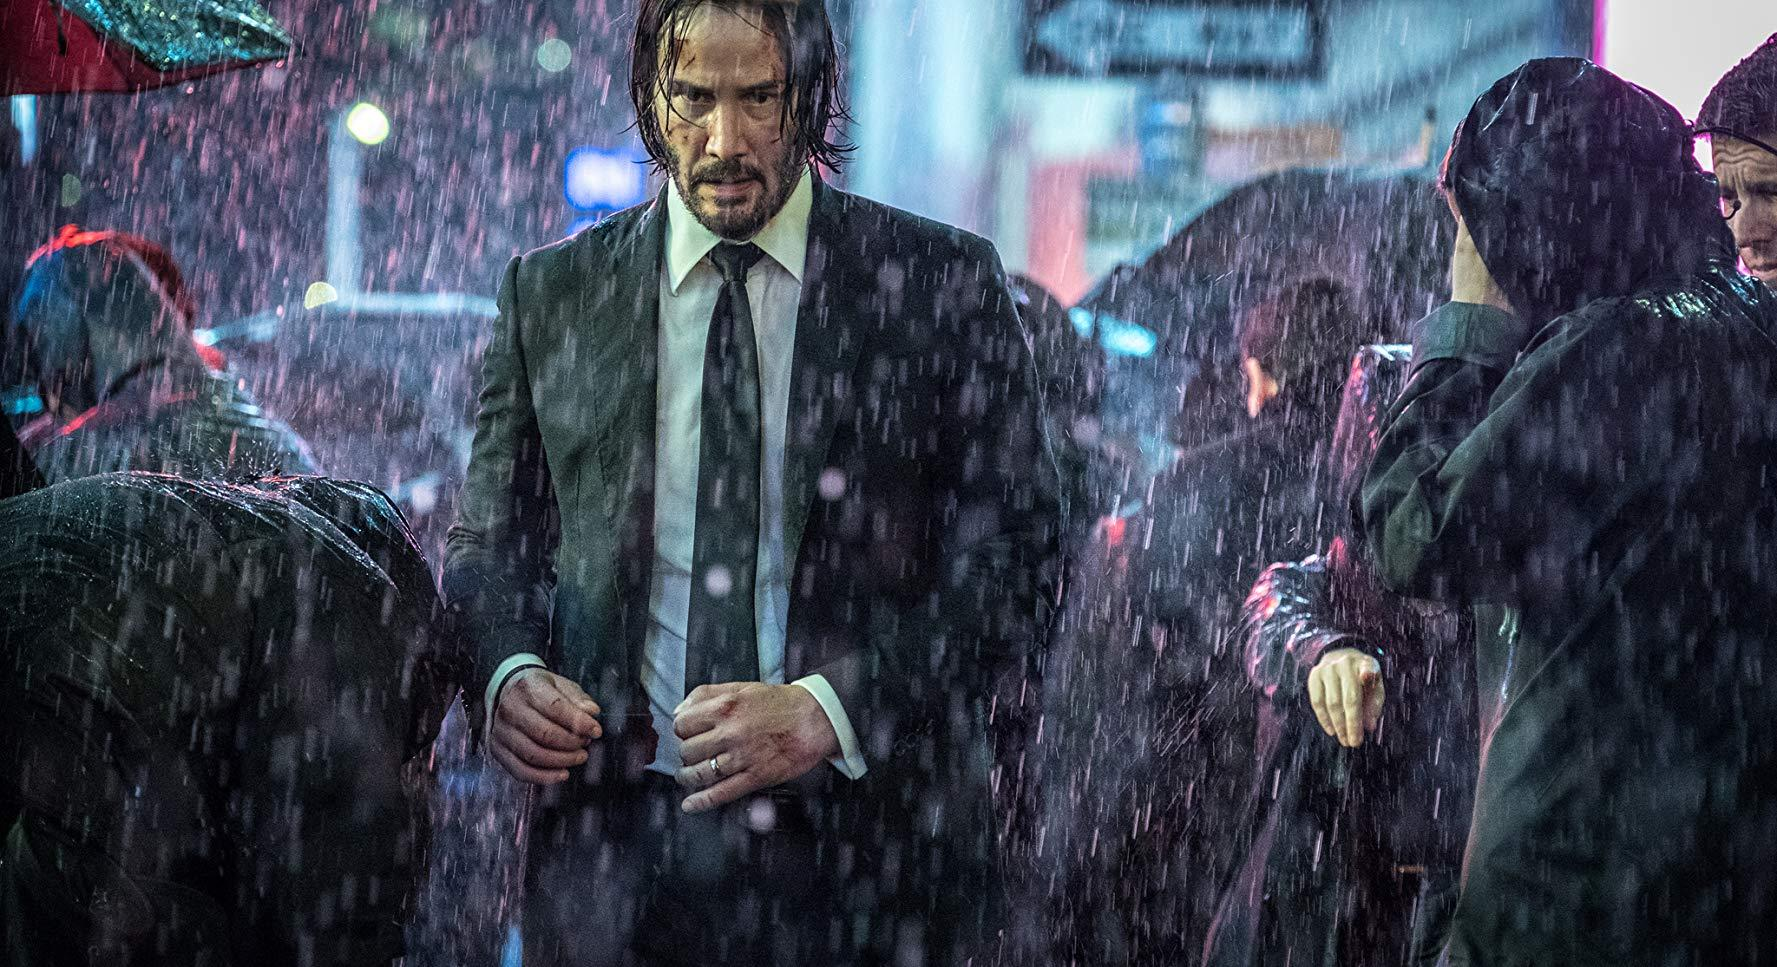 Is 'John Wick: Chapter 3' A Worthy Sequel? Here's What The Reviews